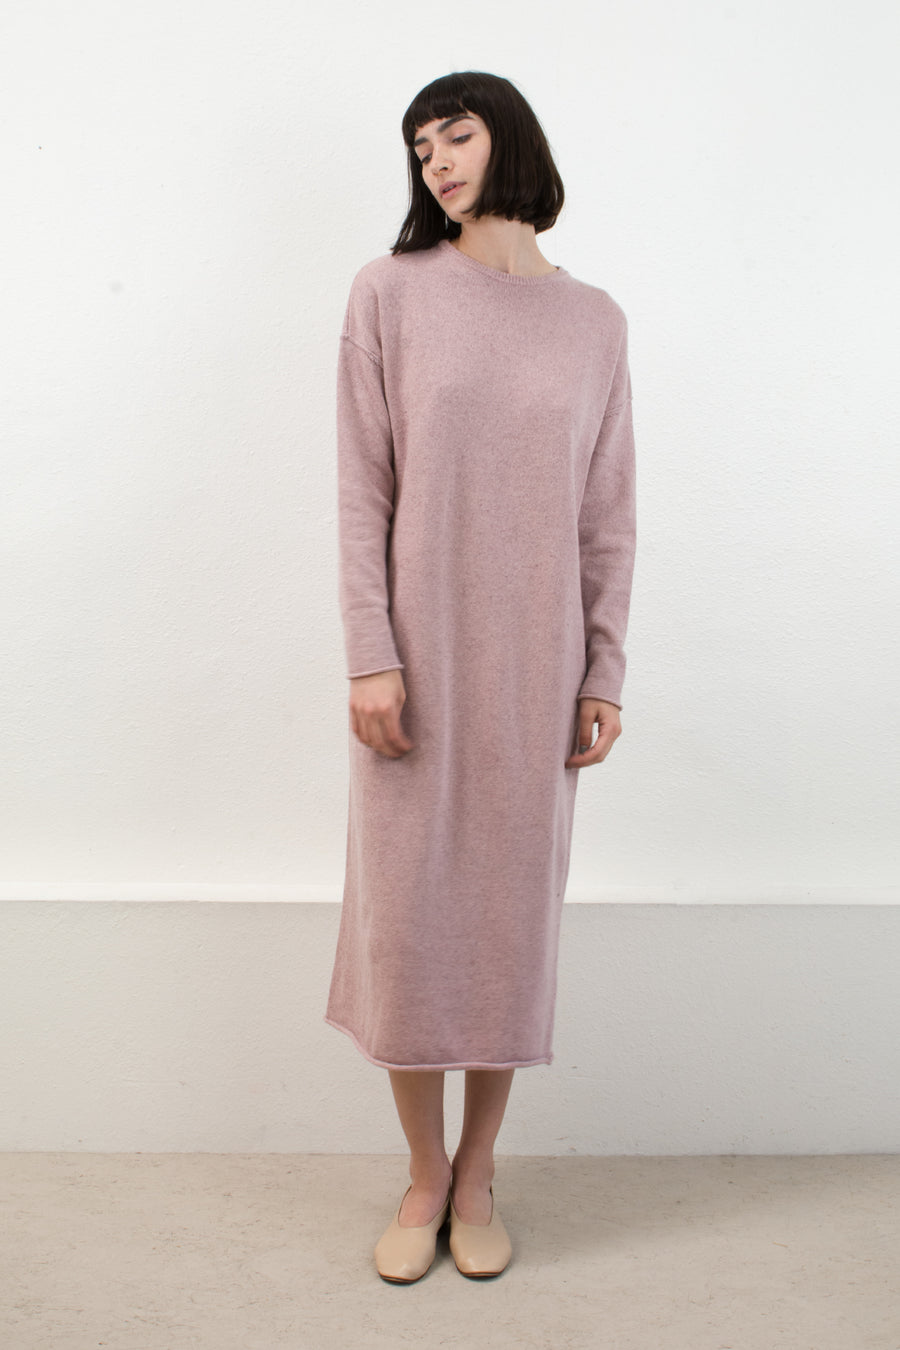 Speckle Rose Sweater Dress